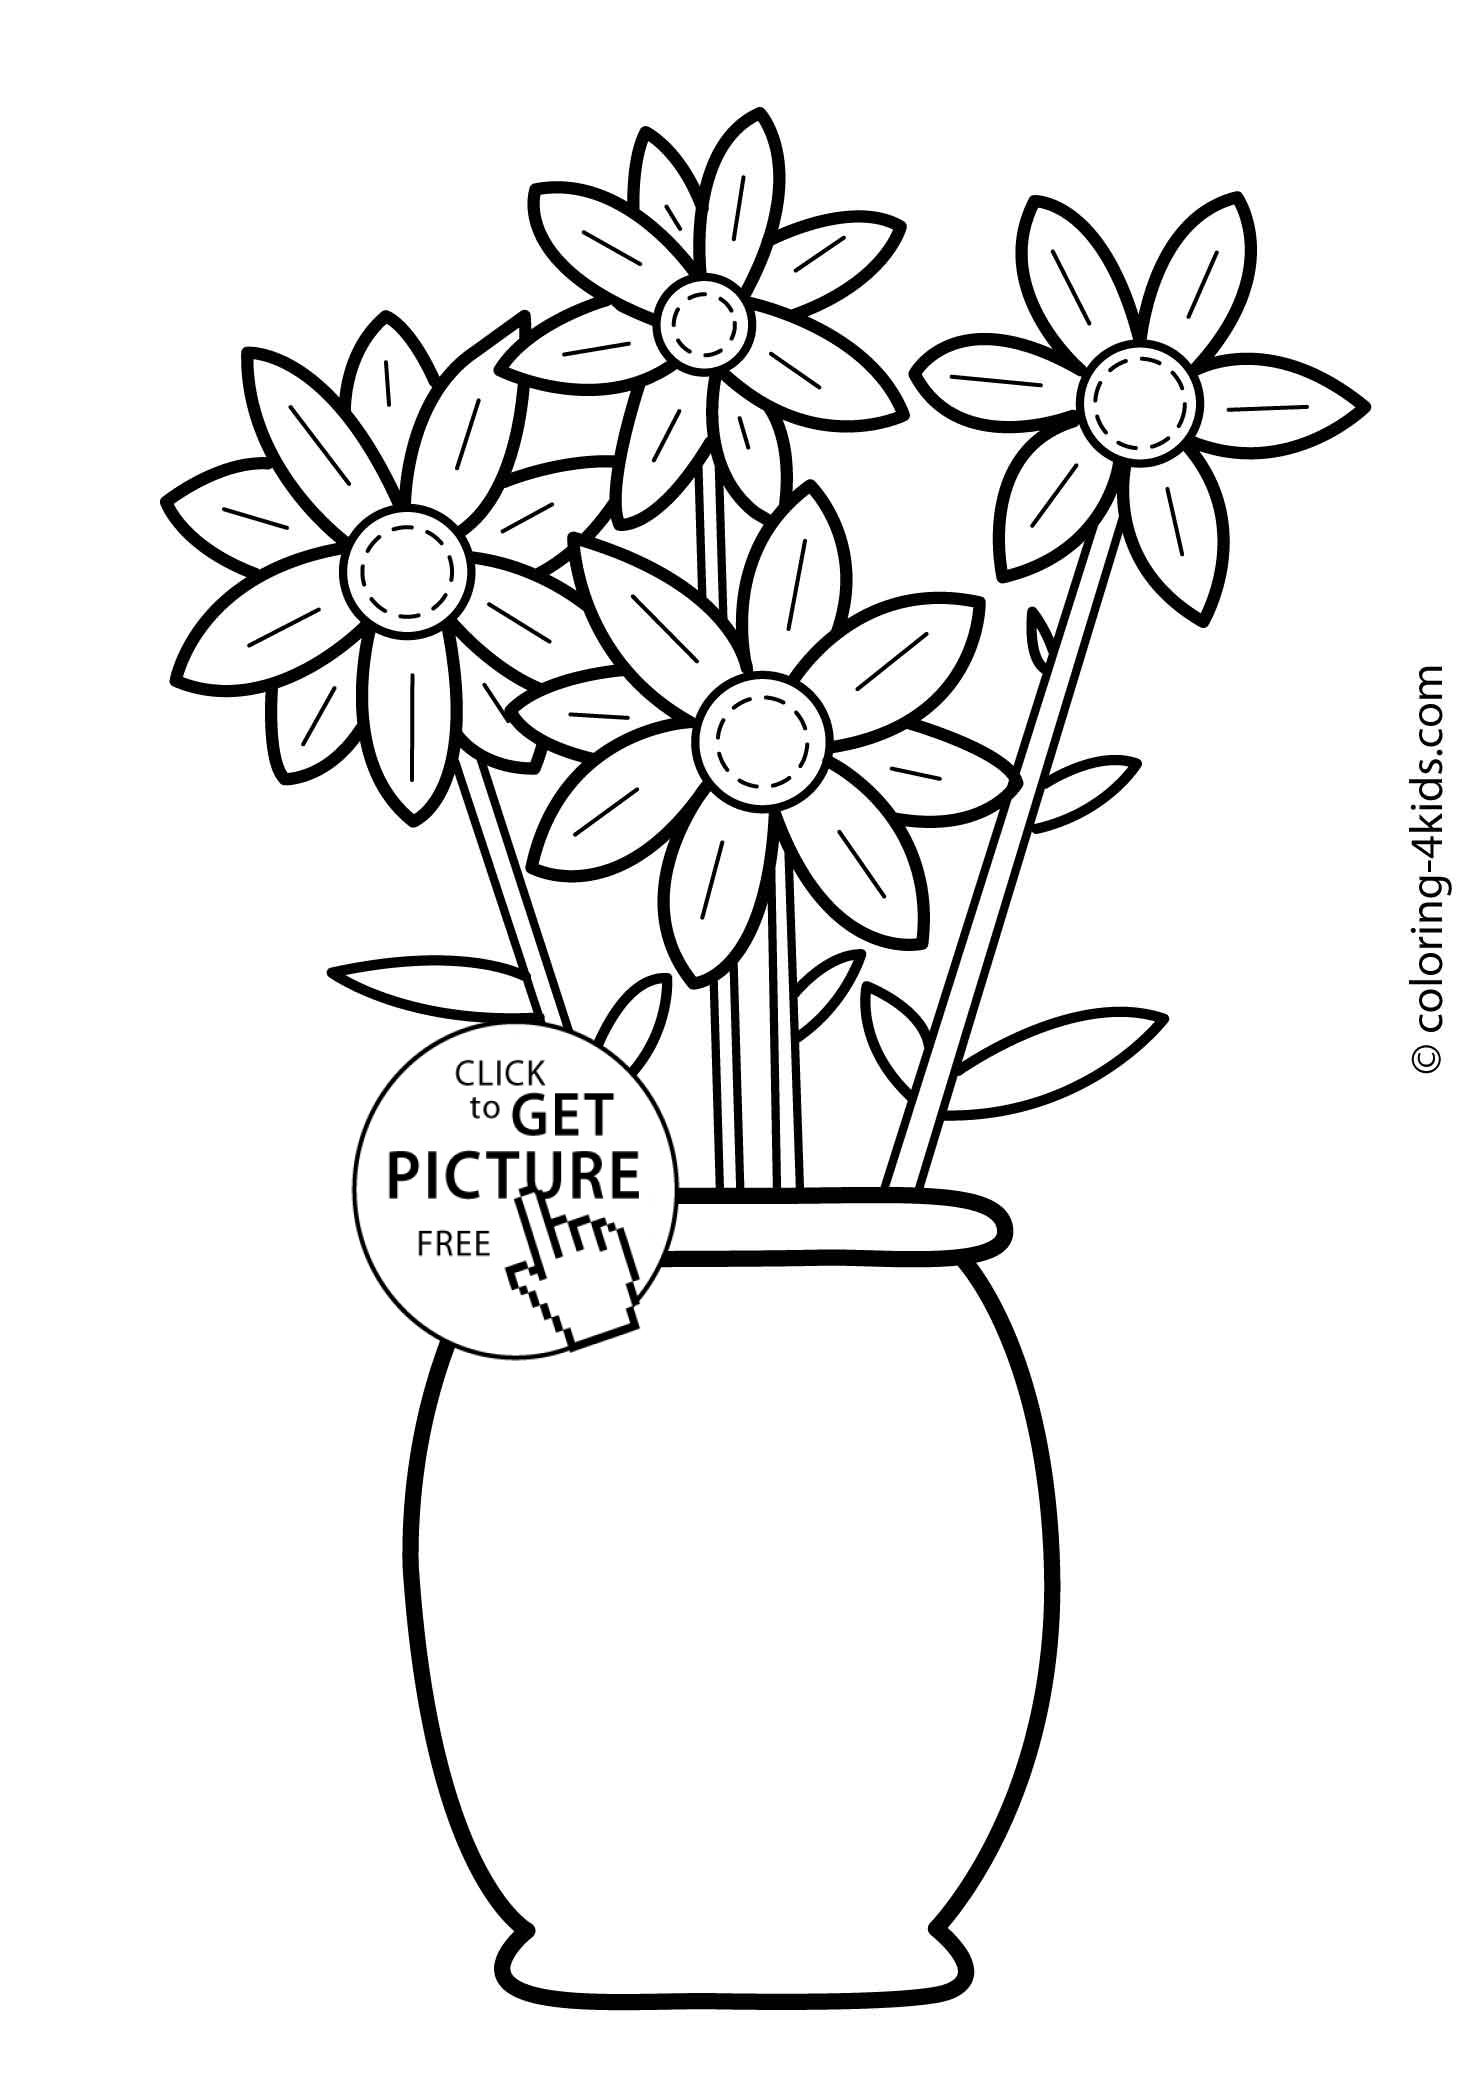 Flowers coloring pages for kids, printable, 6